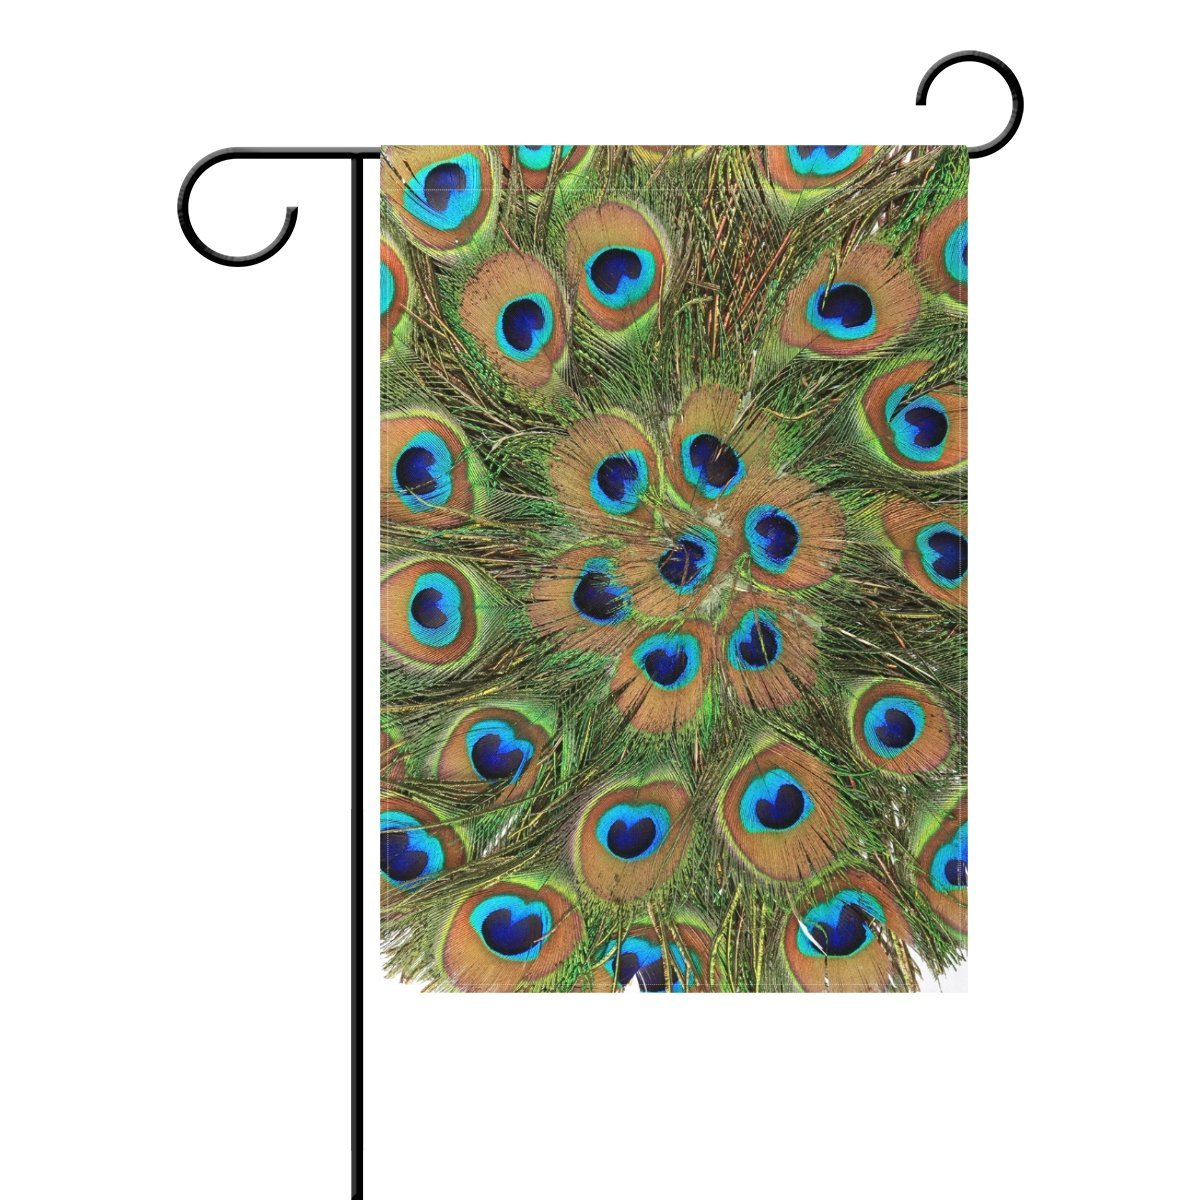 POPCreation Old Round Peacock Garden Flag Bird Feather Mandala Outdoor Home Party 12x18 inches